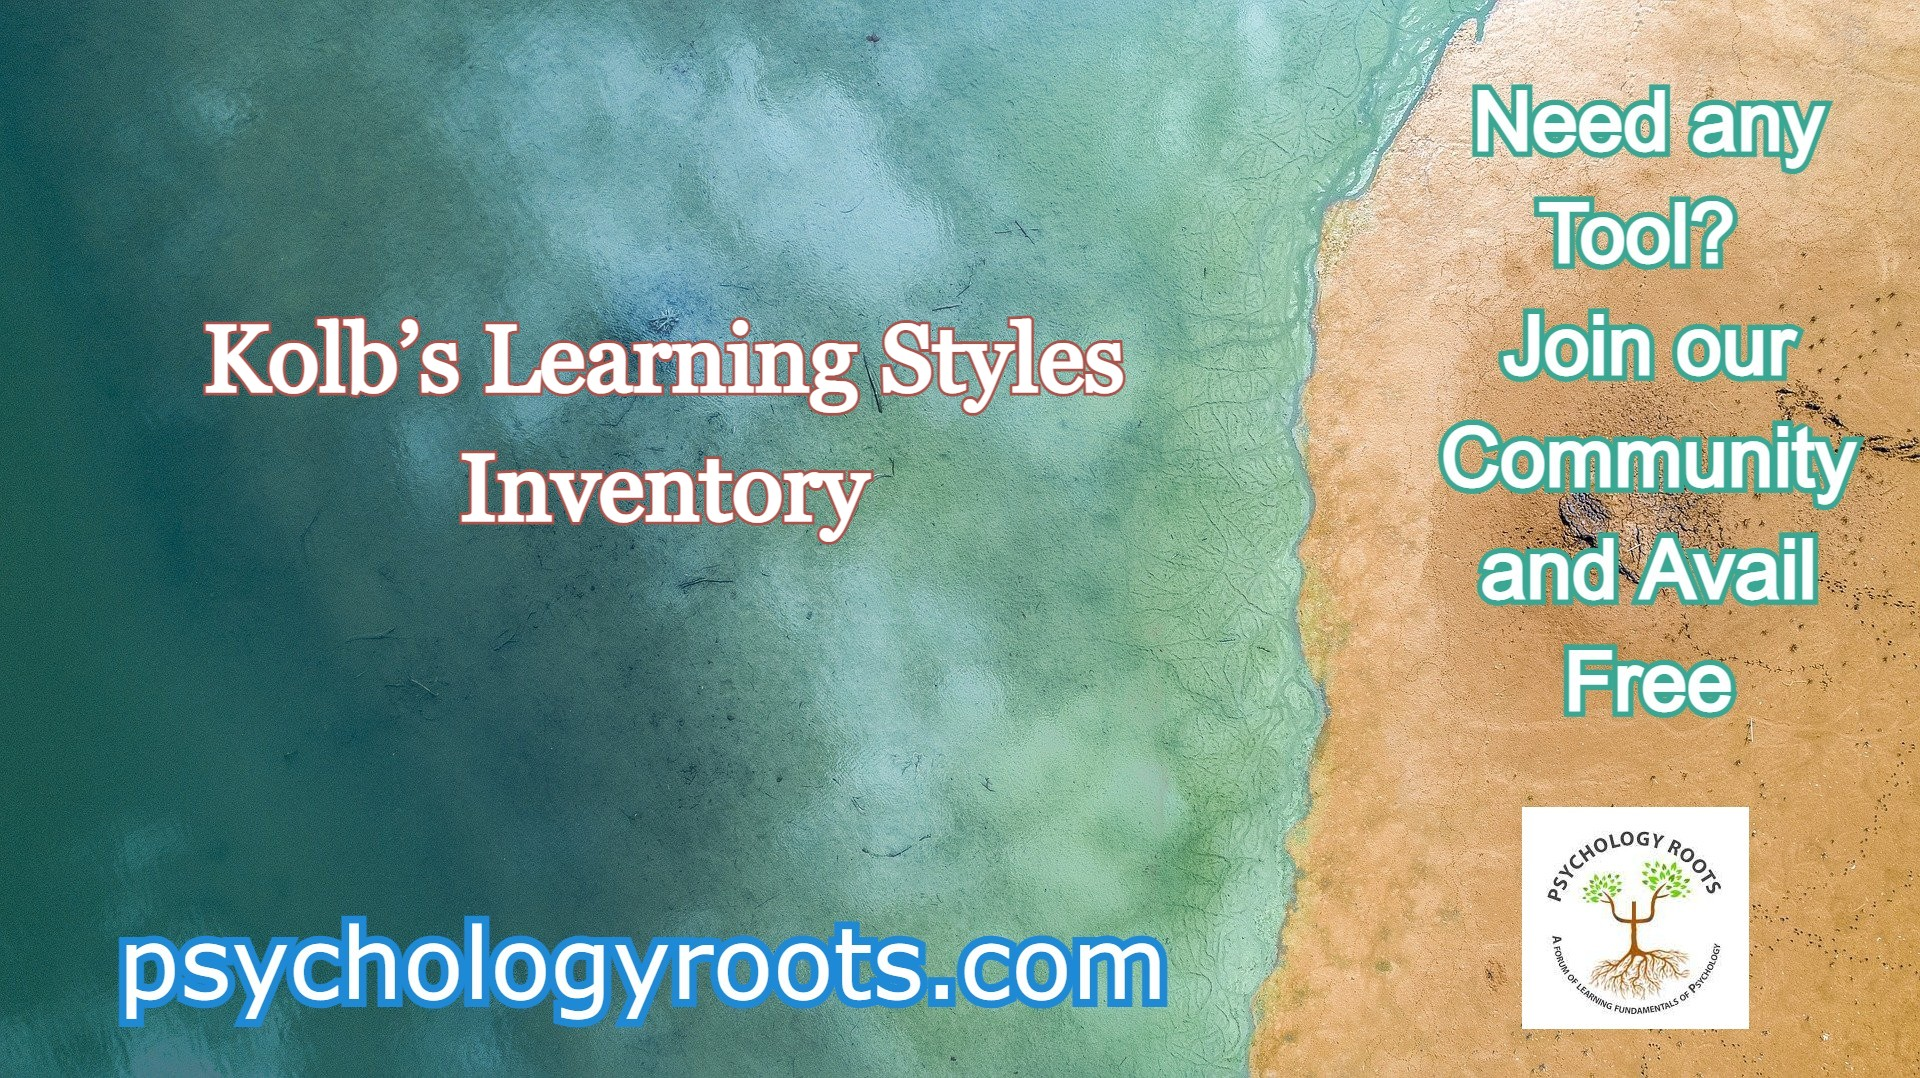 Kolb's Learning Styles Inventory